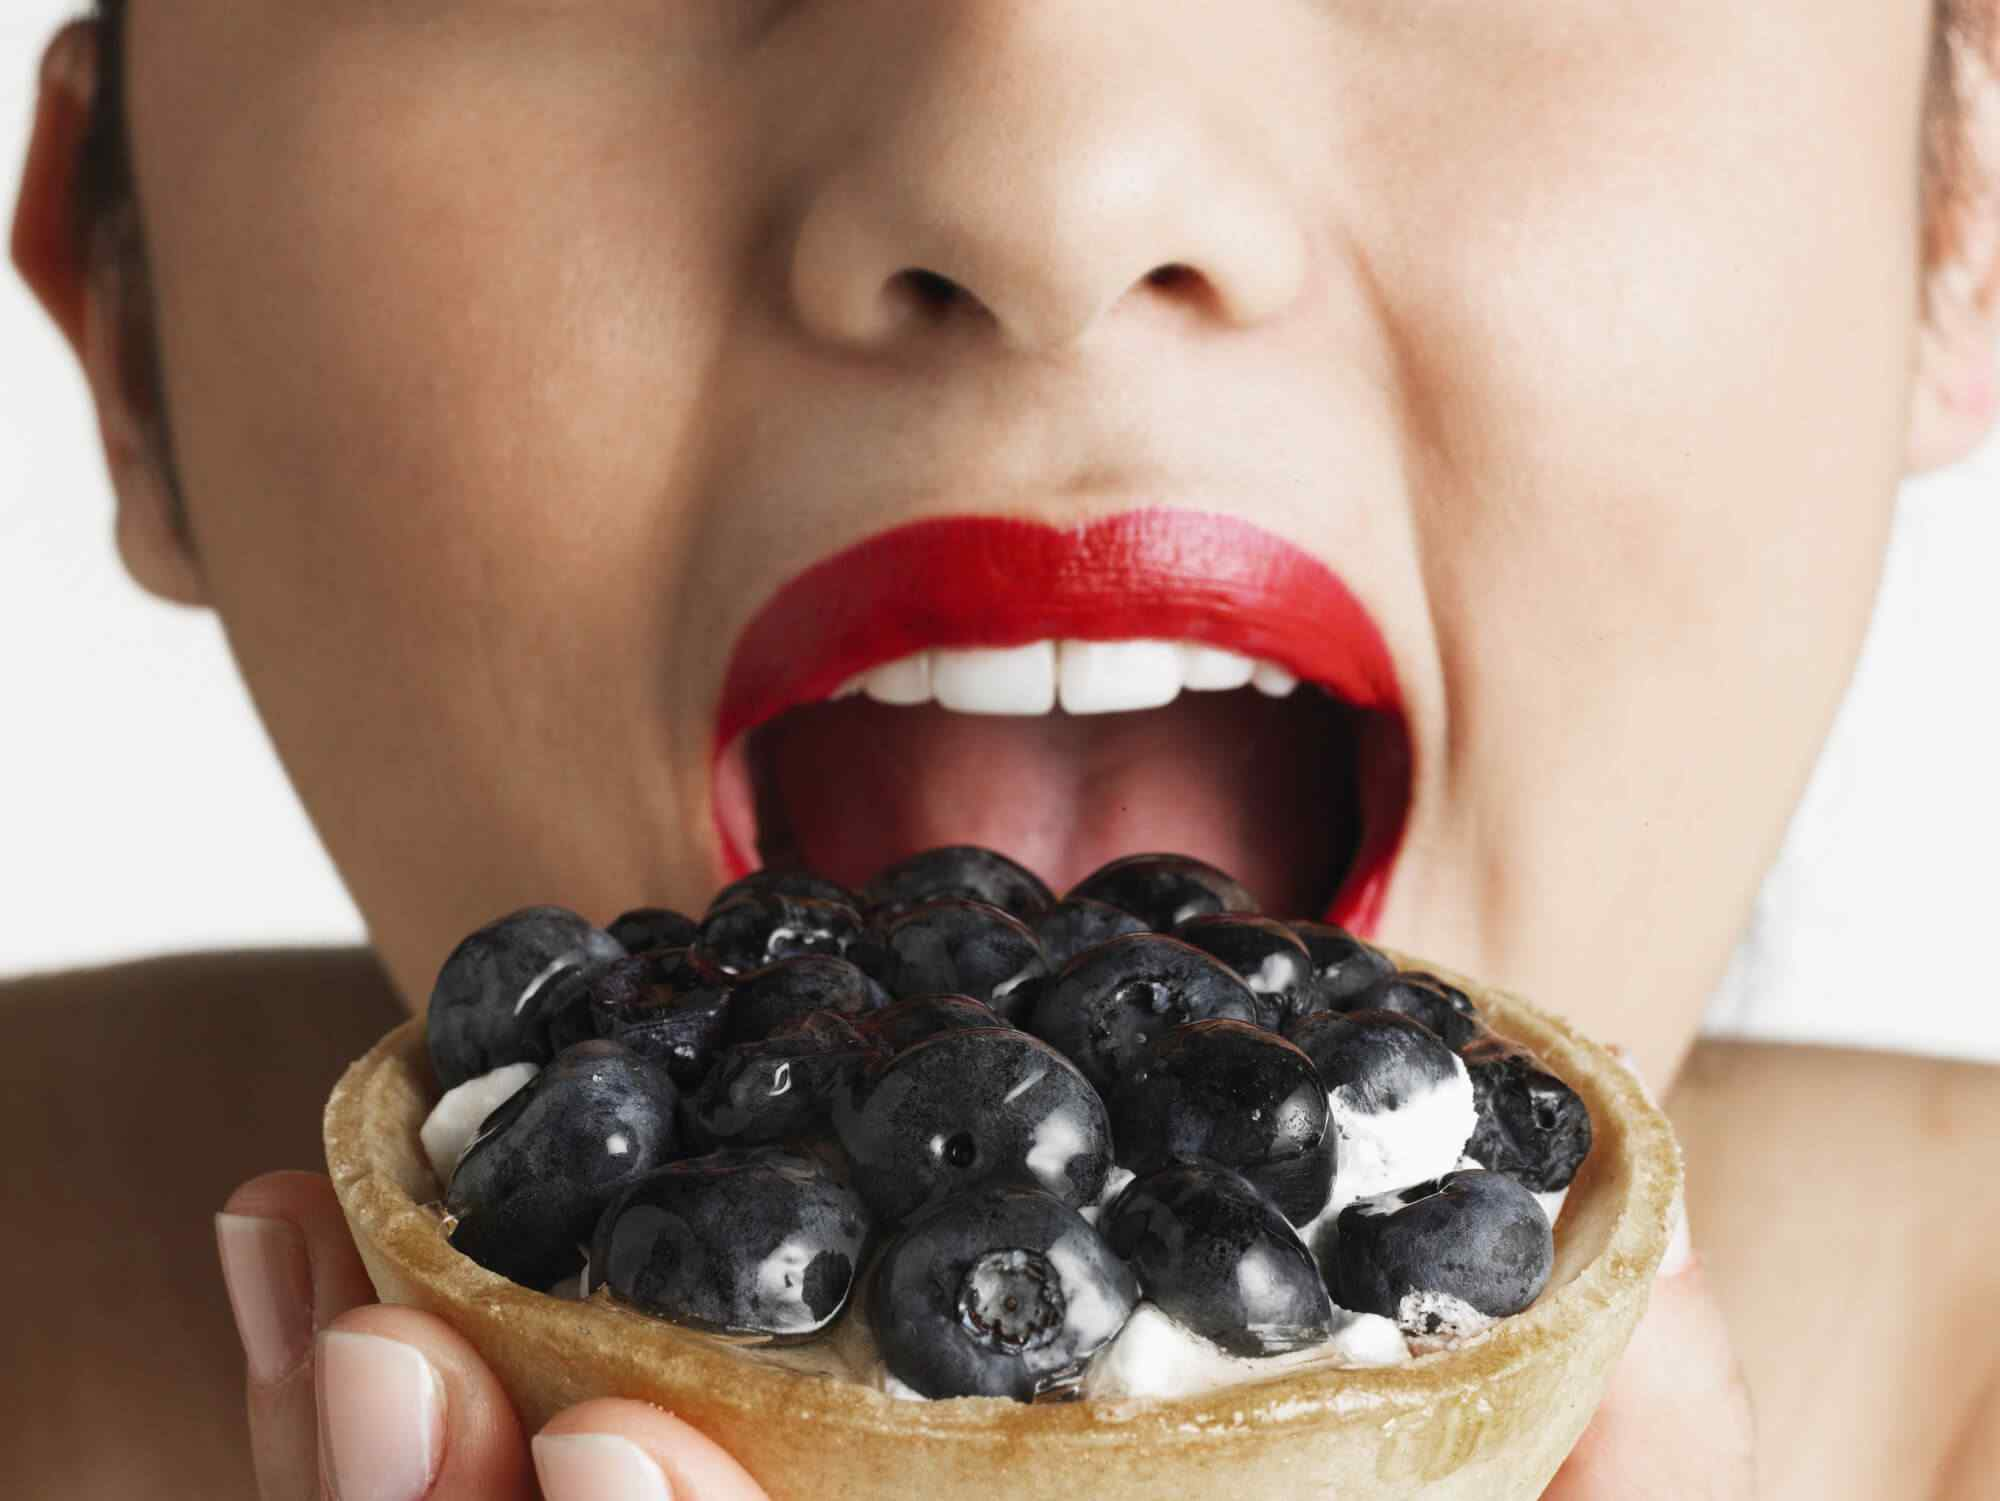 Woman wearing red lipstick, taking bite of blueberry tart, close-up of mouth